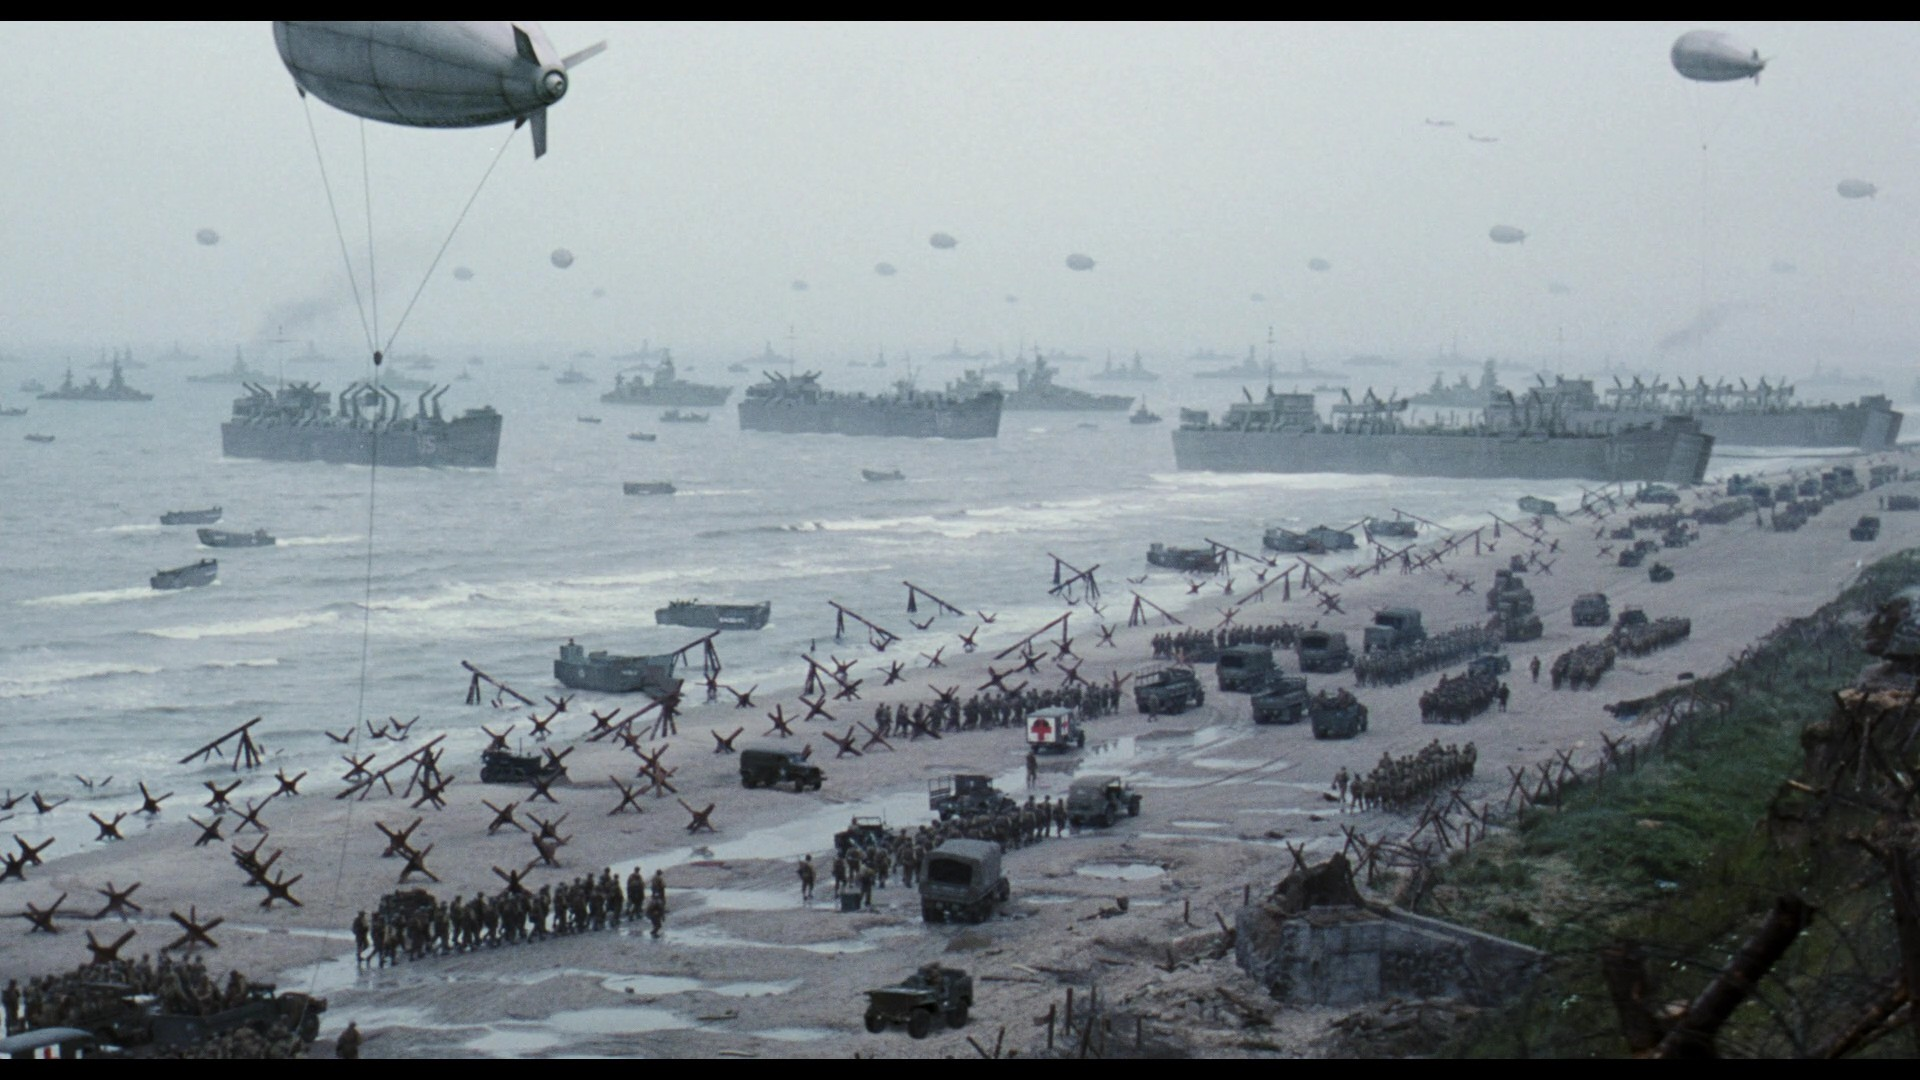 normandy beach essay First wave at omaha beach normandy was an american victory it was their duty to trace the twists and turns of fortune by which success was won.